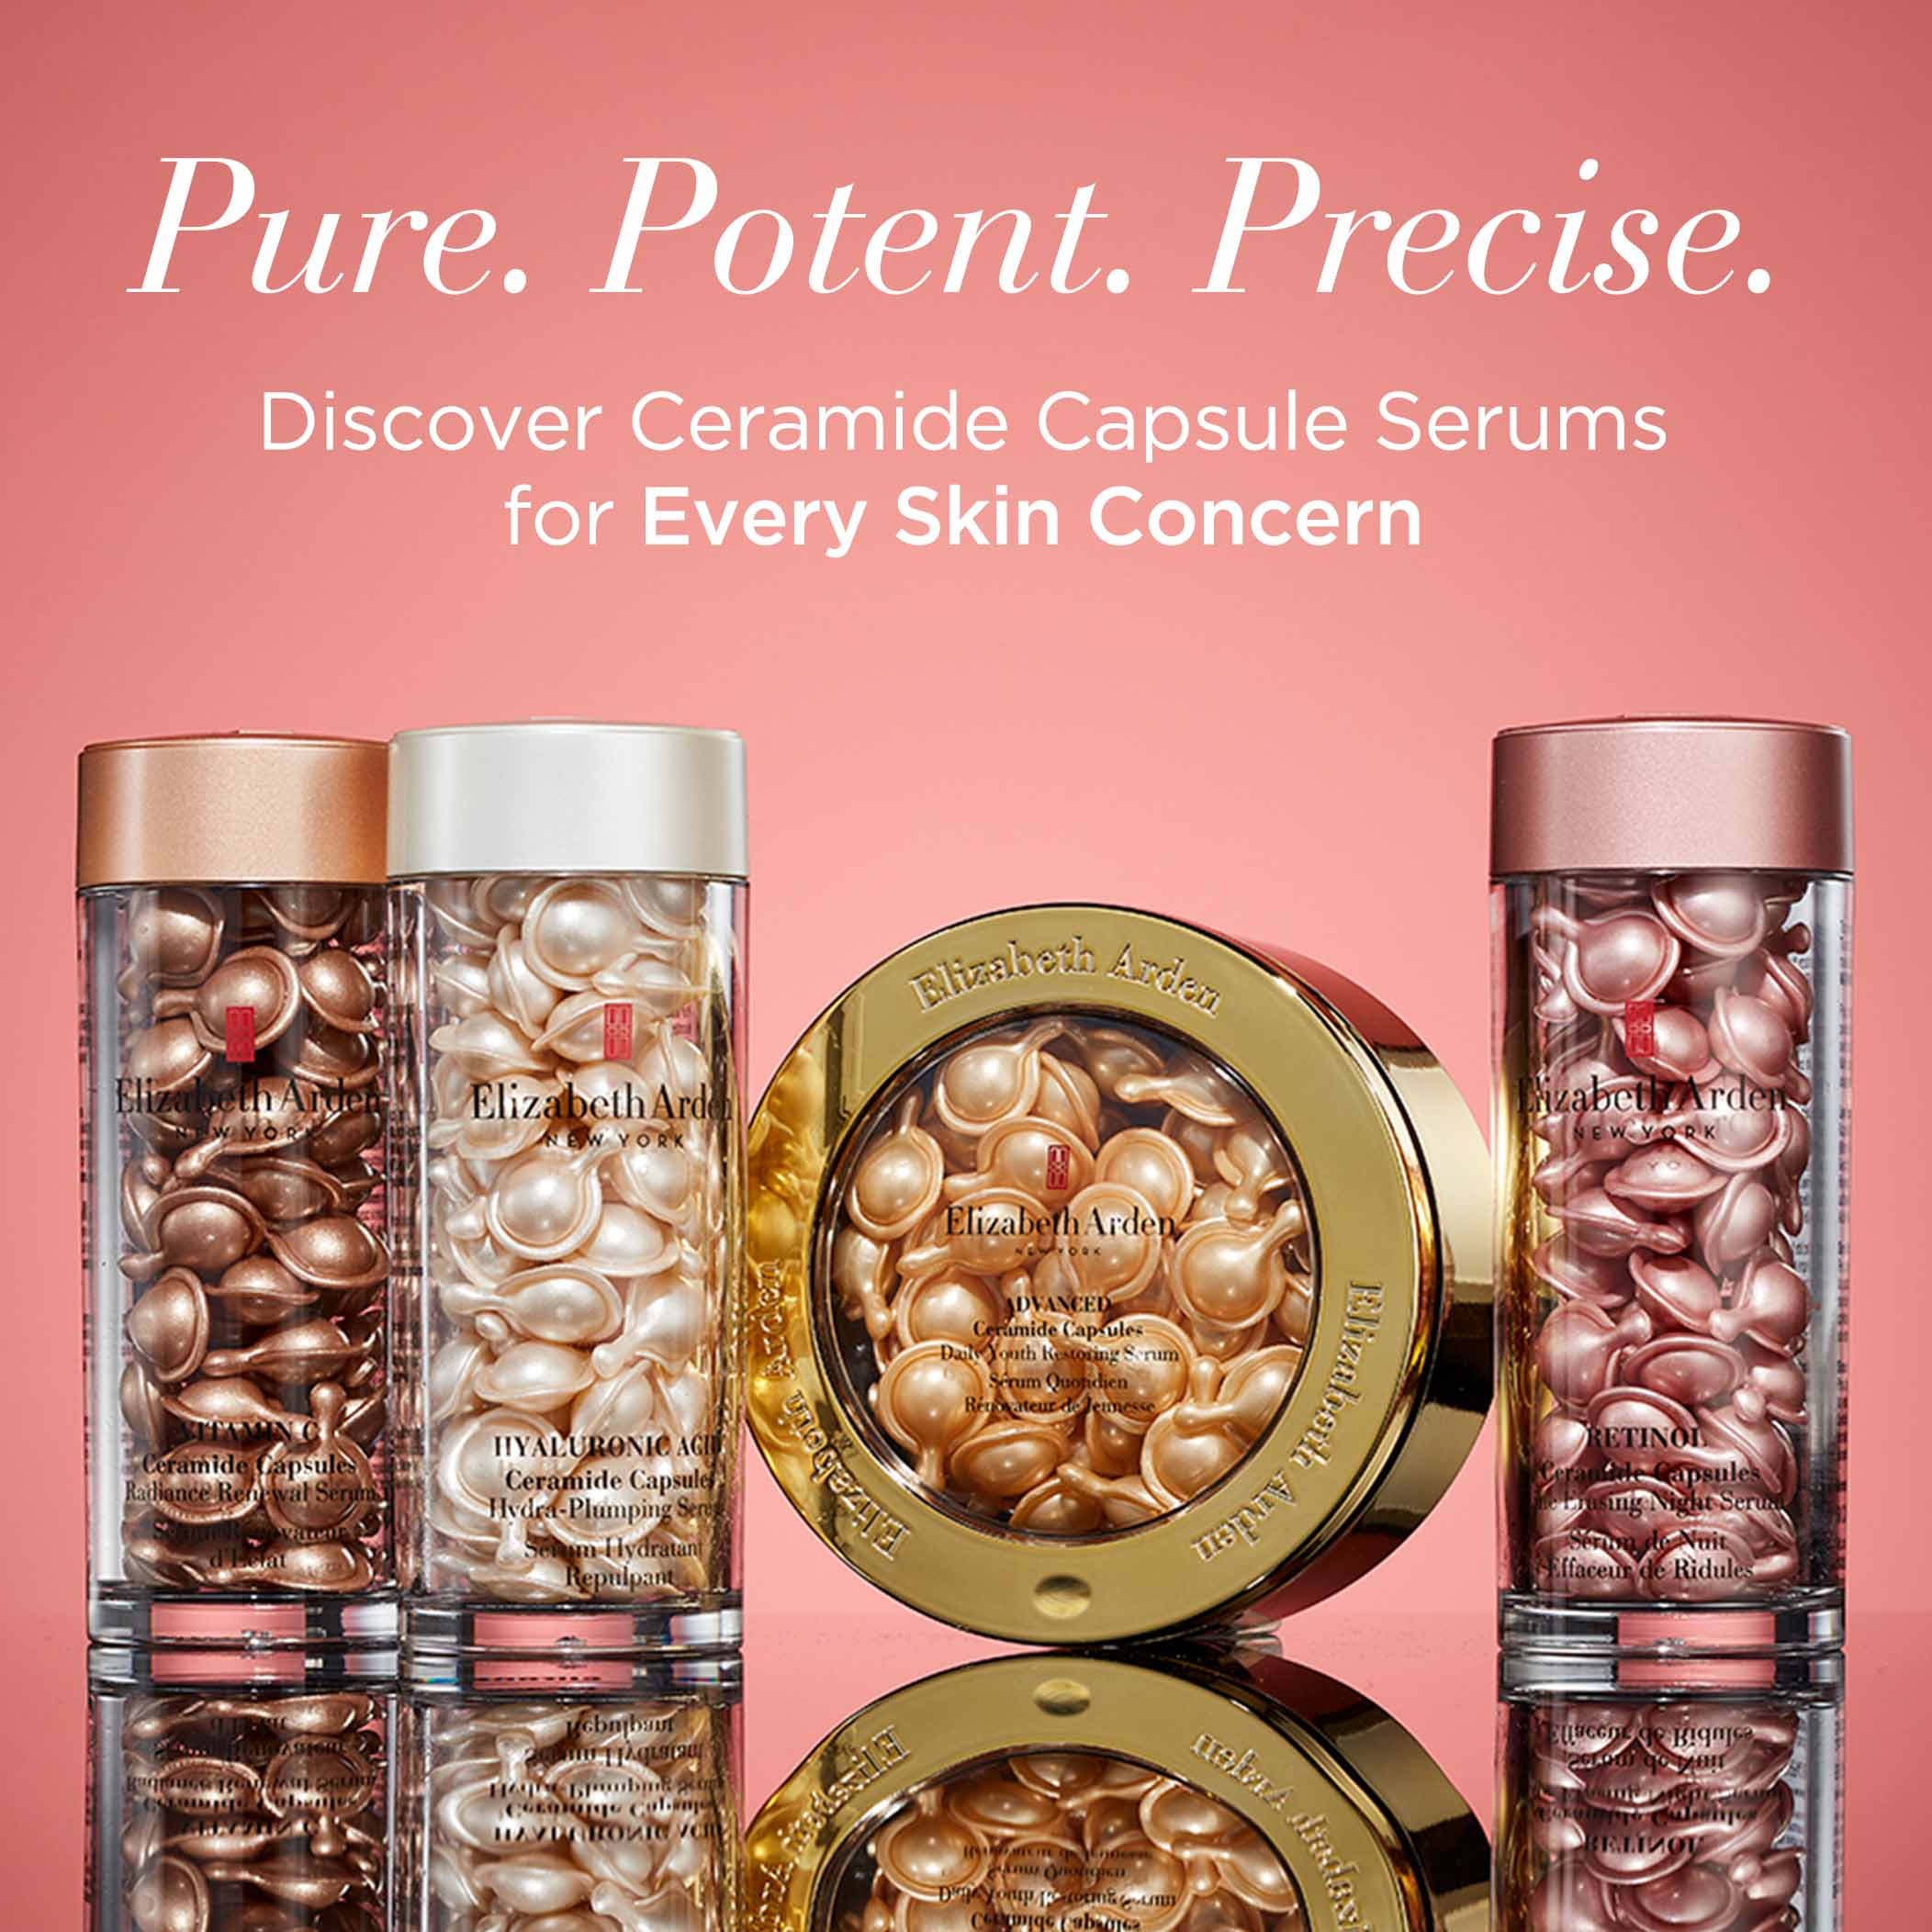 Discover Ceramide Capsule Serums for Every Skin Concern